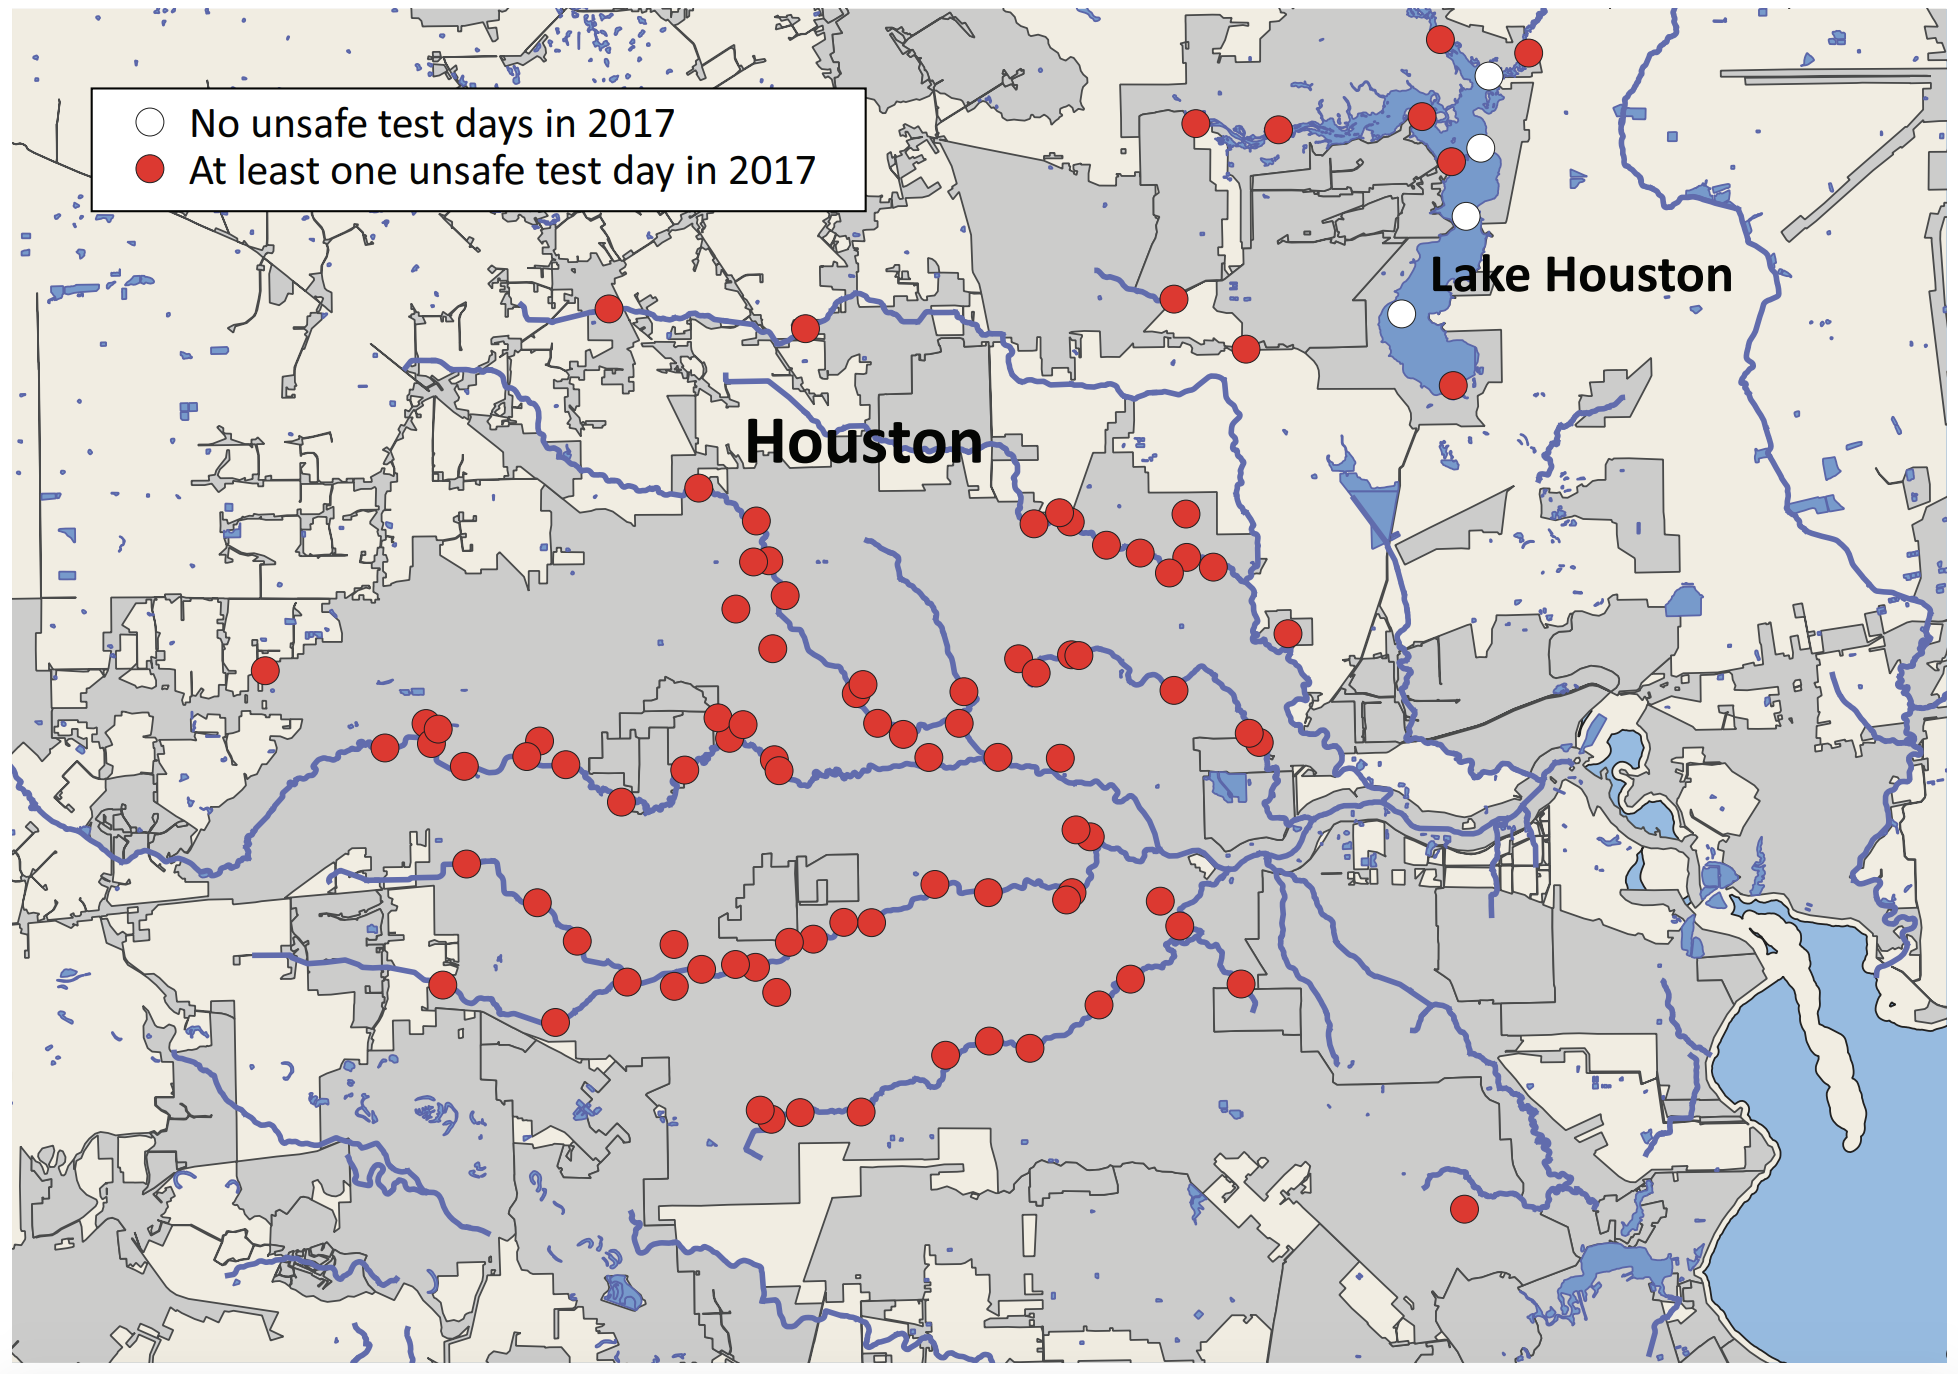 A map of the city of Houston showing polluted water was found at 96% of testing locations.